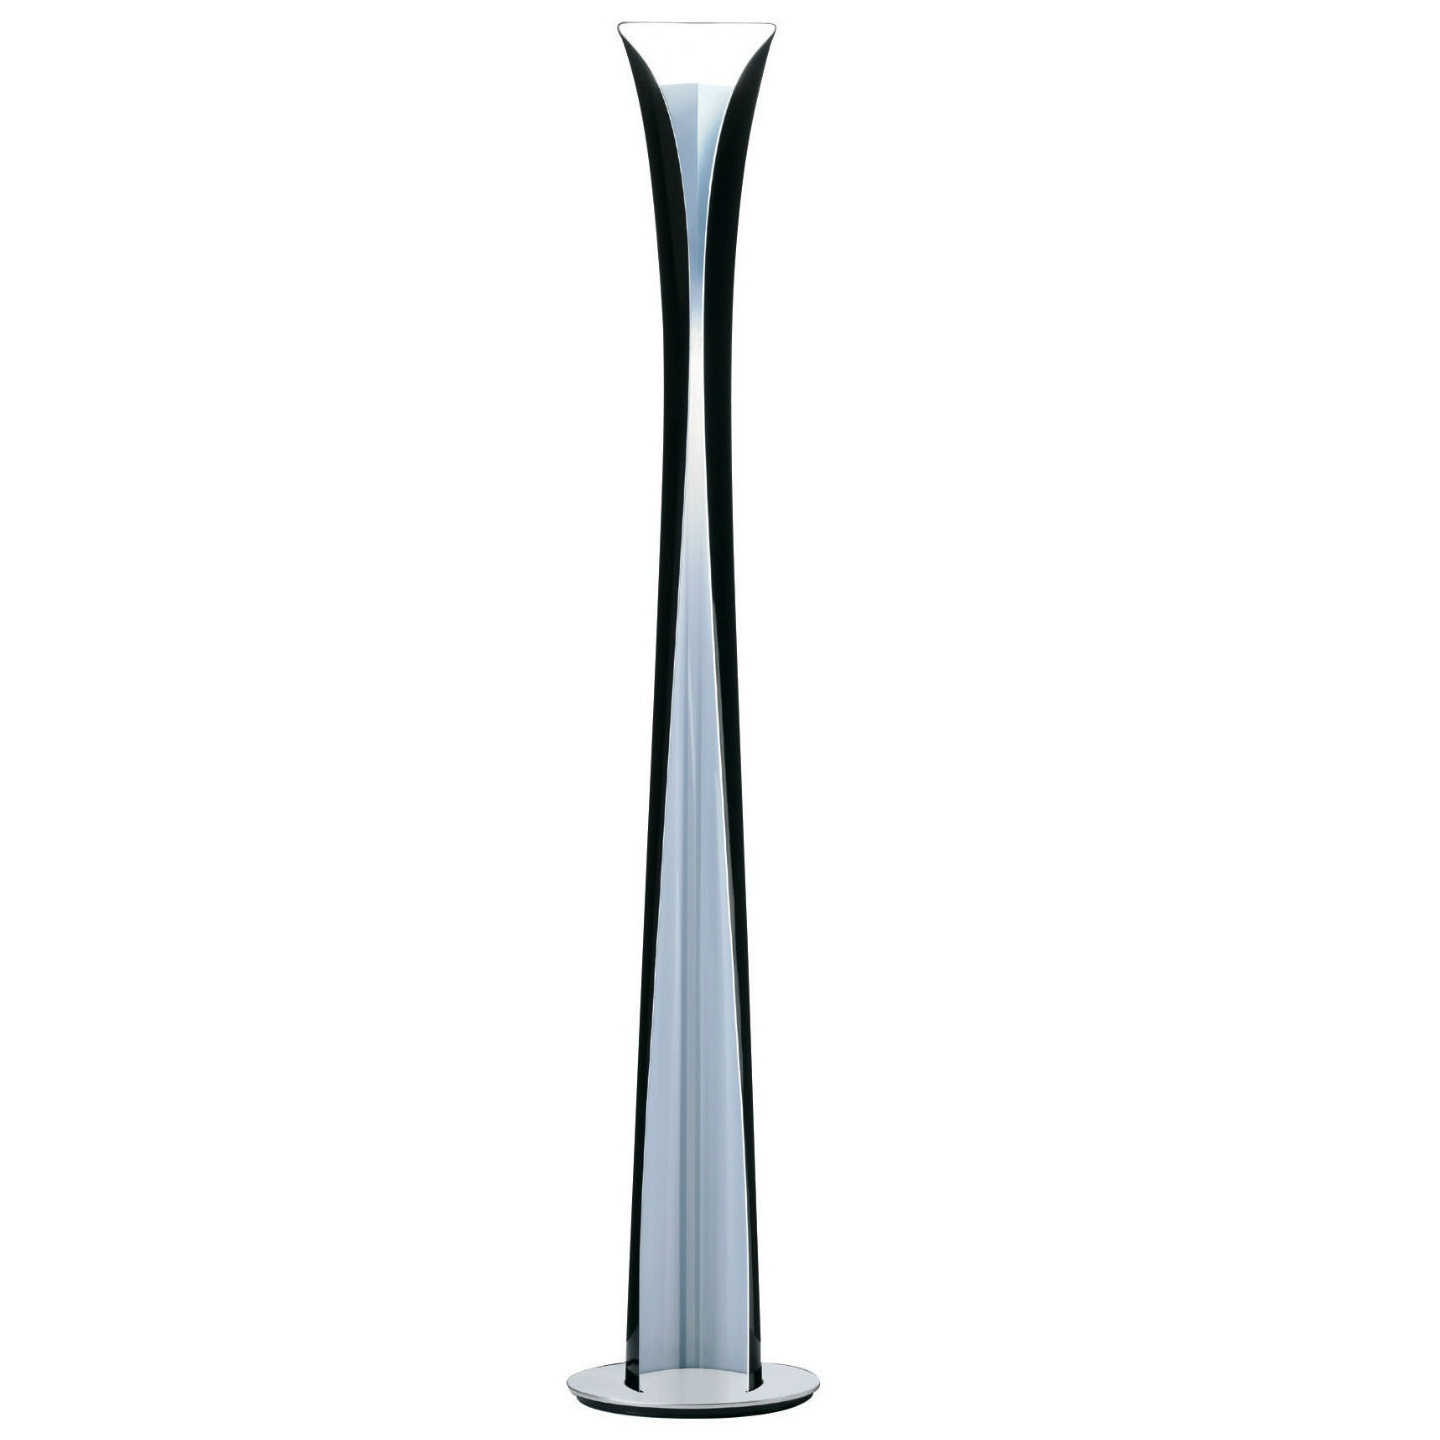 Cadmo Floor Lamp R7s 1x230w + E27 1x60w black white